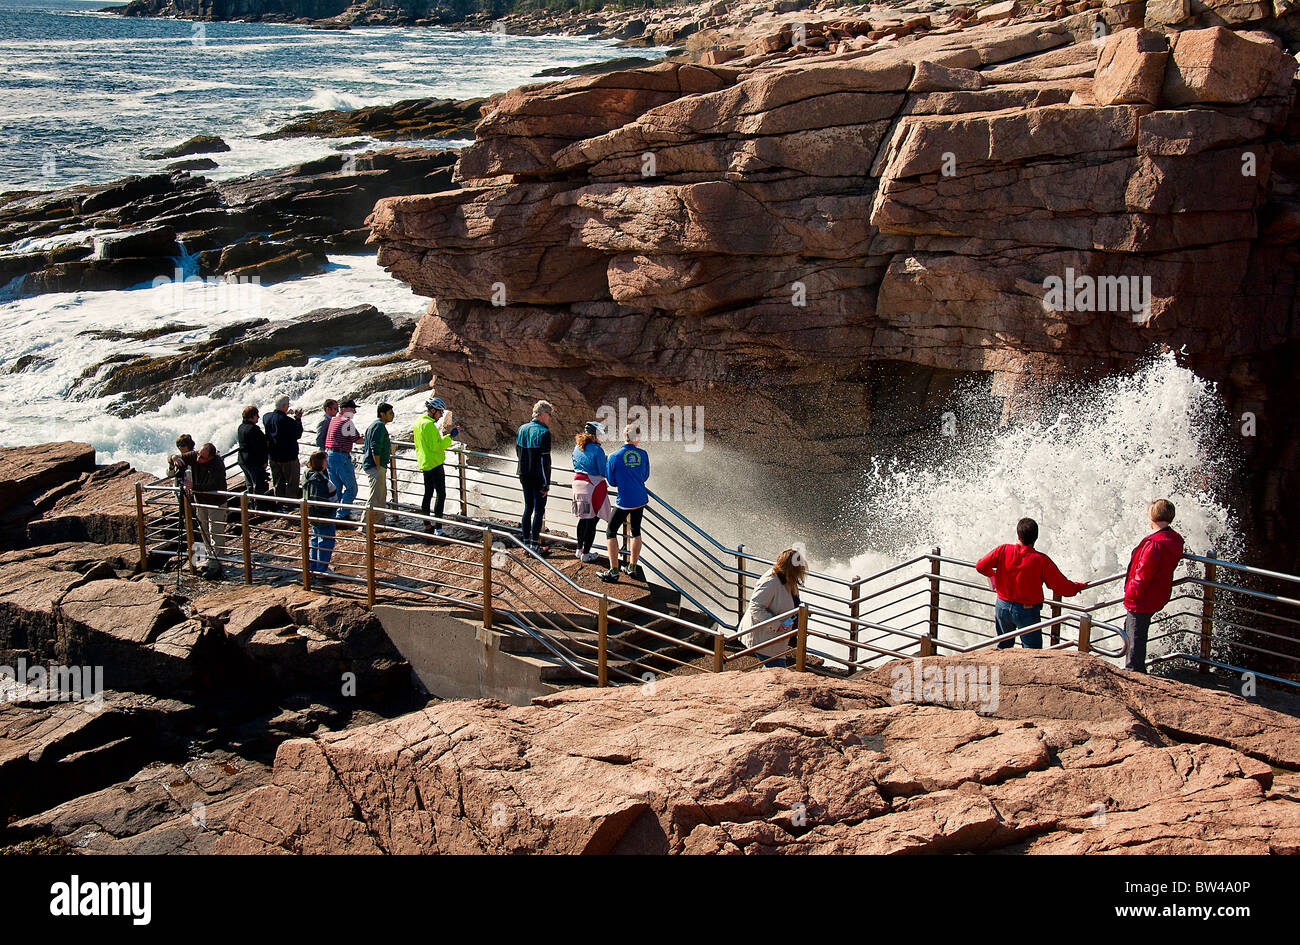 Thunder hole, acadia np, Maine, États-Unis Photo Stock